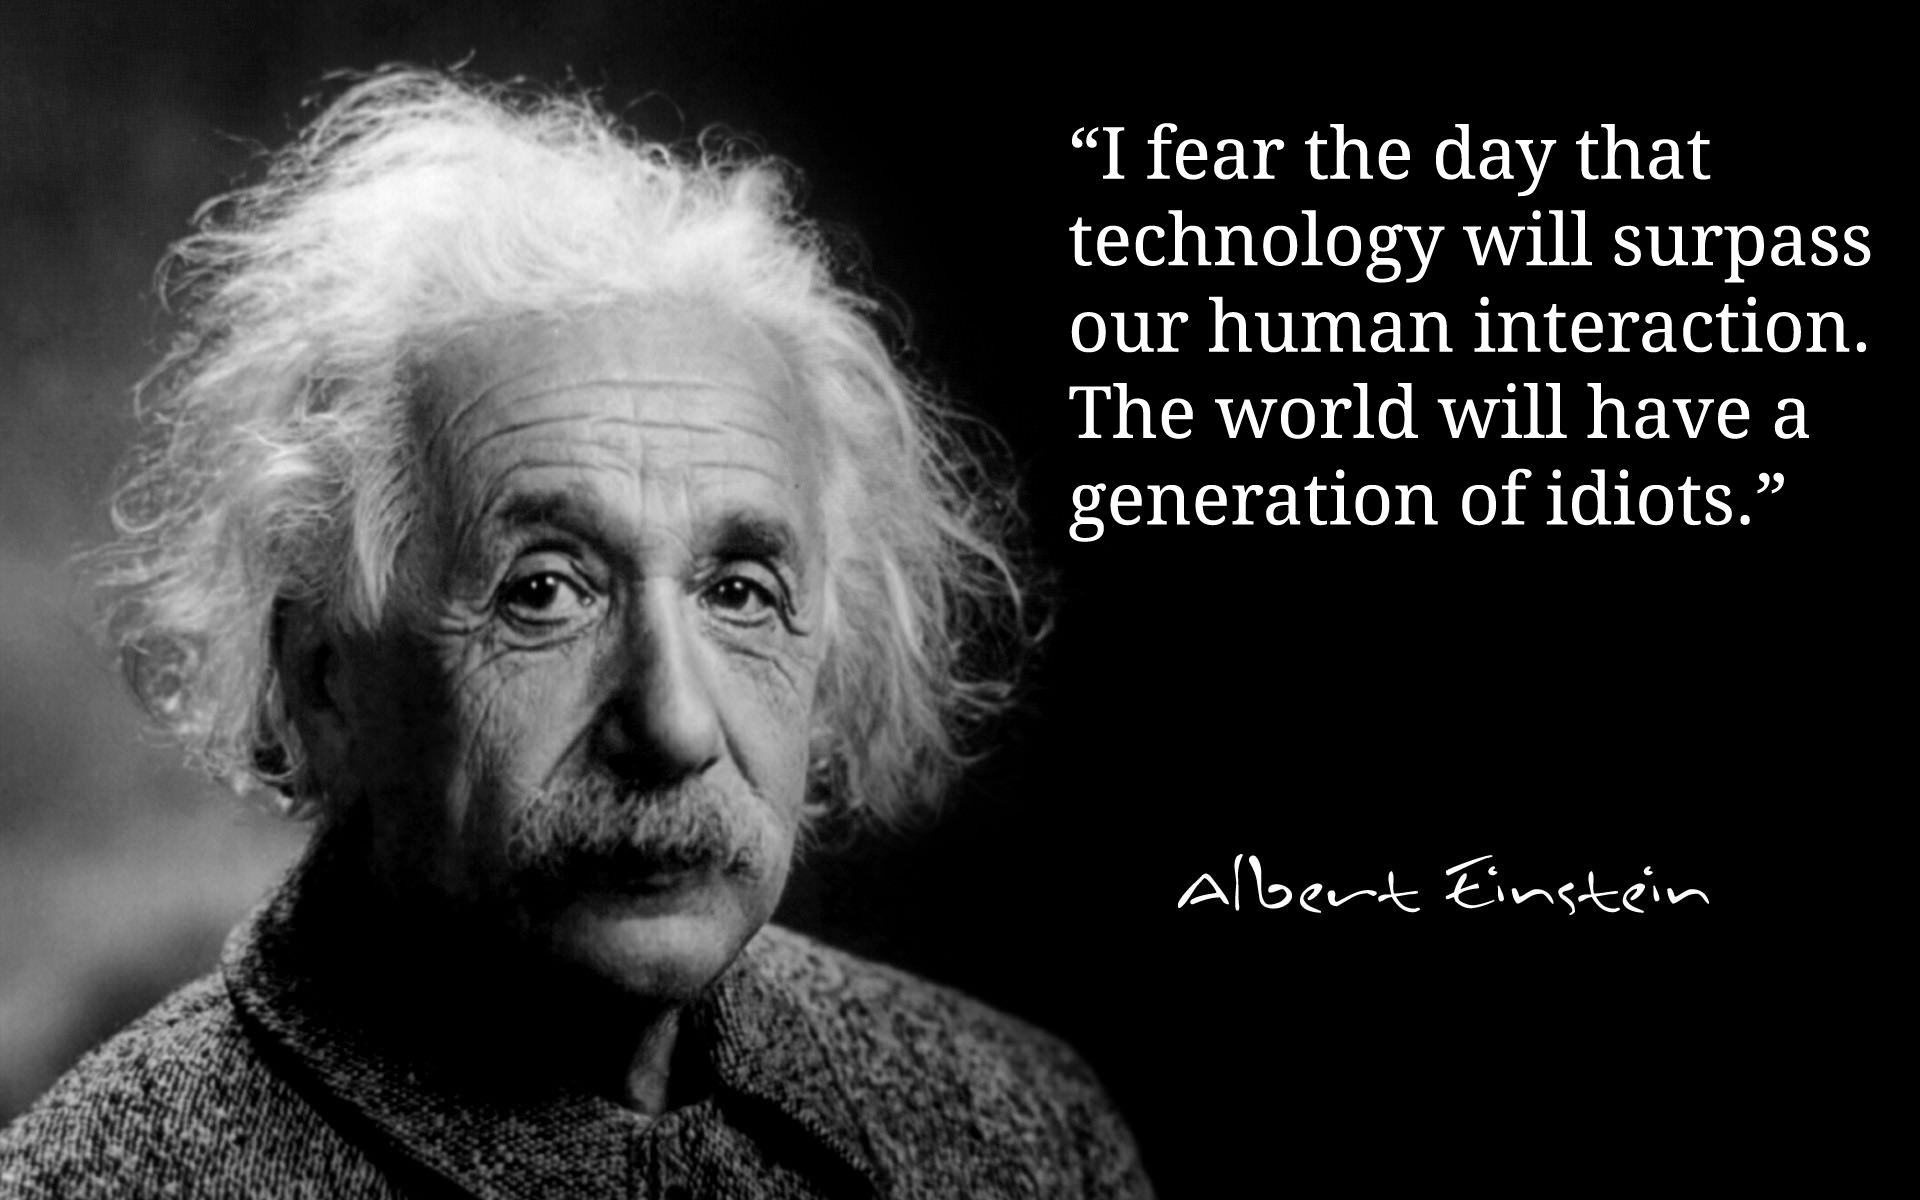 albert einstein quote fear technology surpass human interaction generation idiots